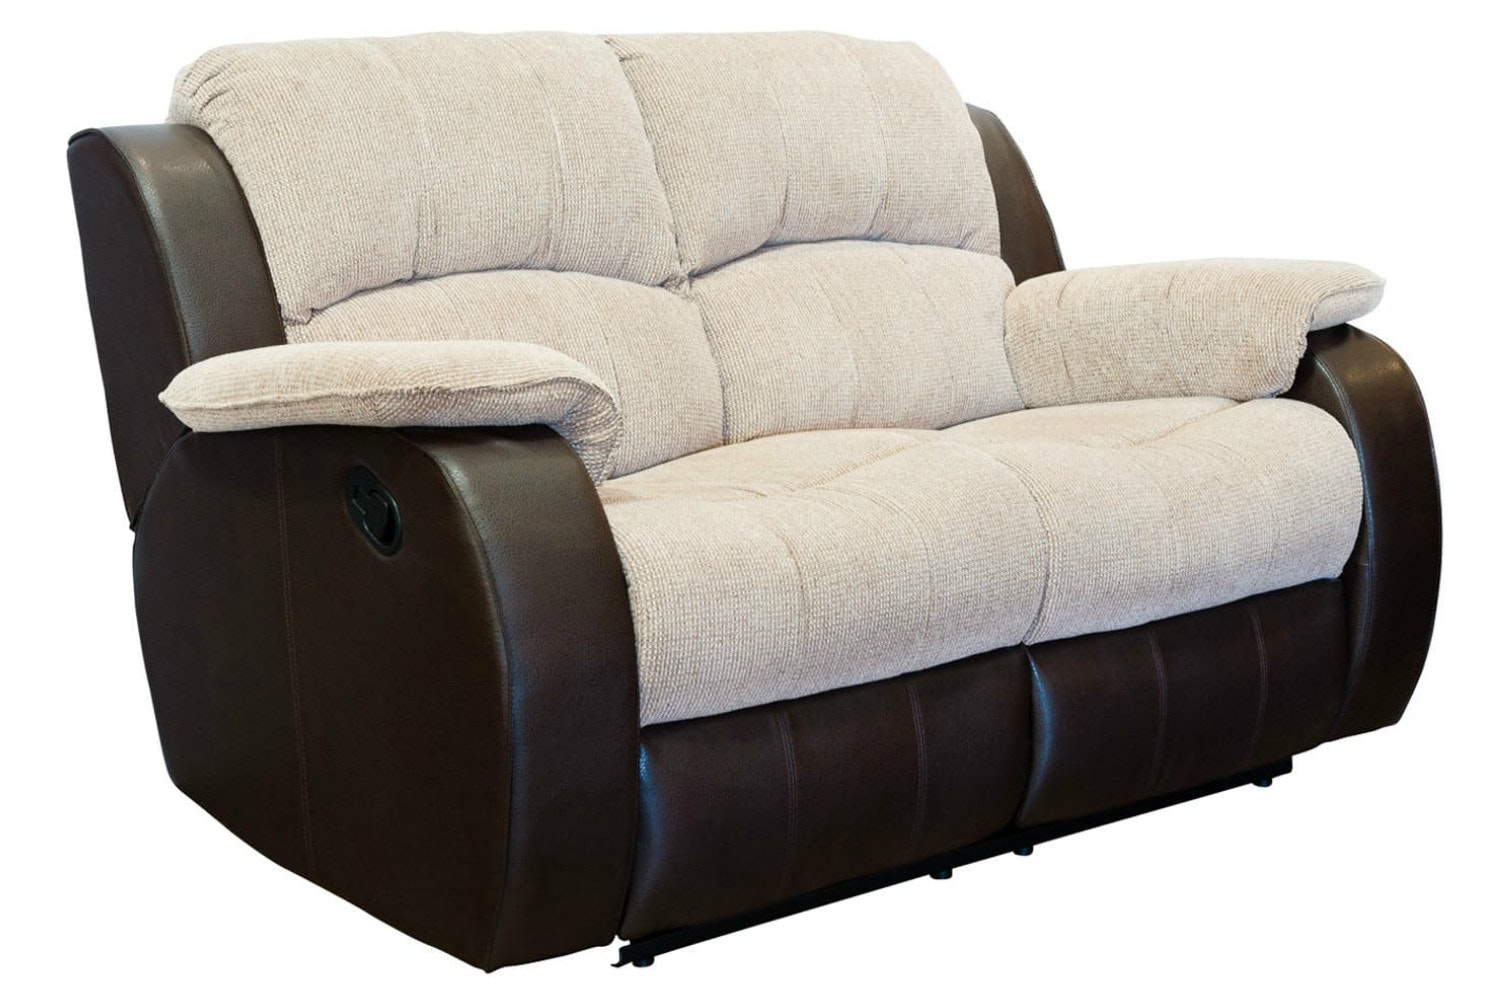 Kayde 2 Seater Recliner Sofa Ireland ~ Best Place To Buy Reclining Sofa